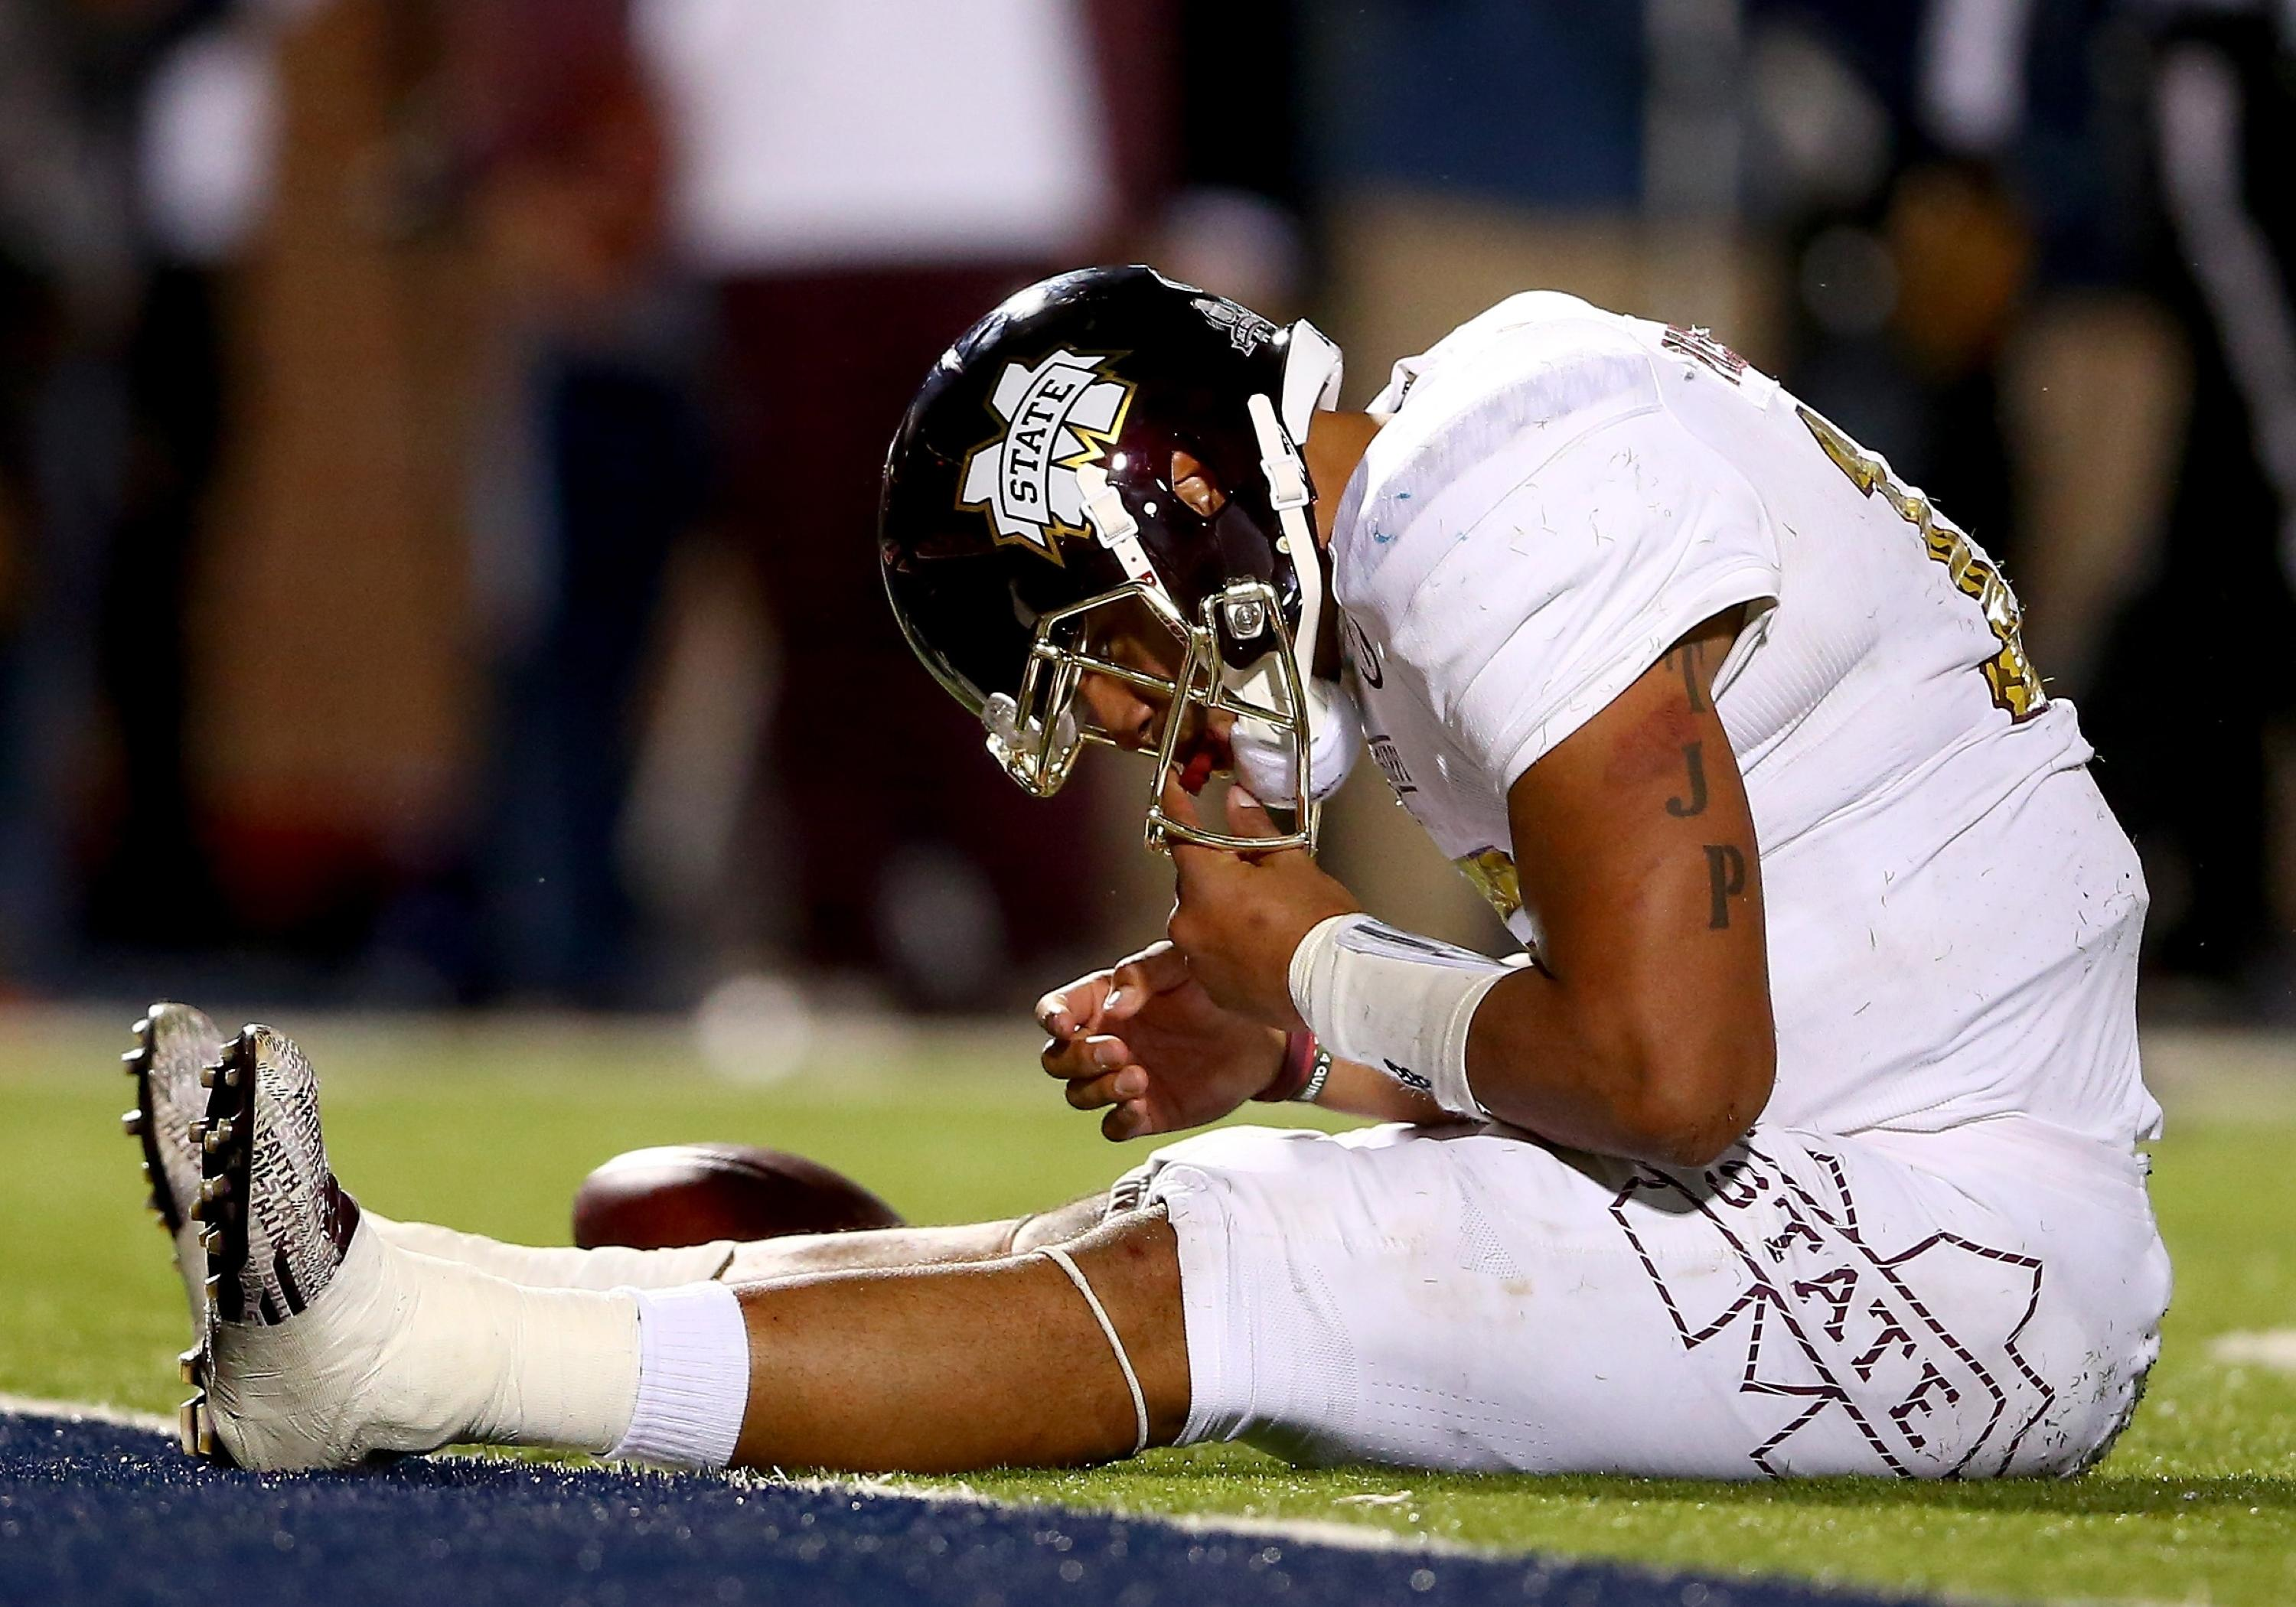 Mississippi State s fairy tale run ends in thud as rival Ole Miss plays  spoiler role 234b82bfc